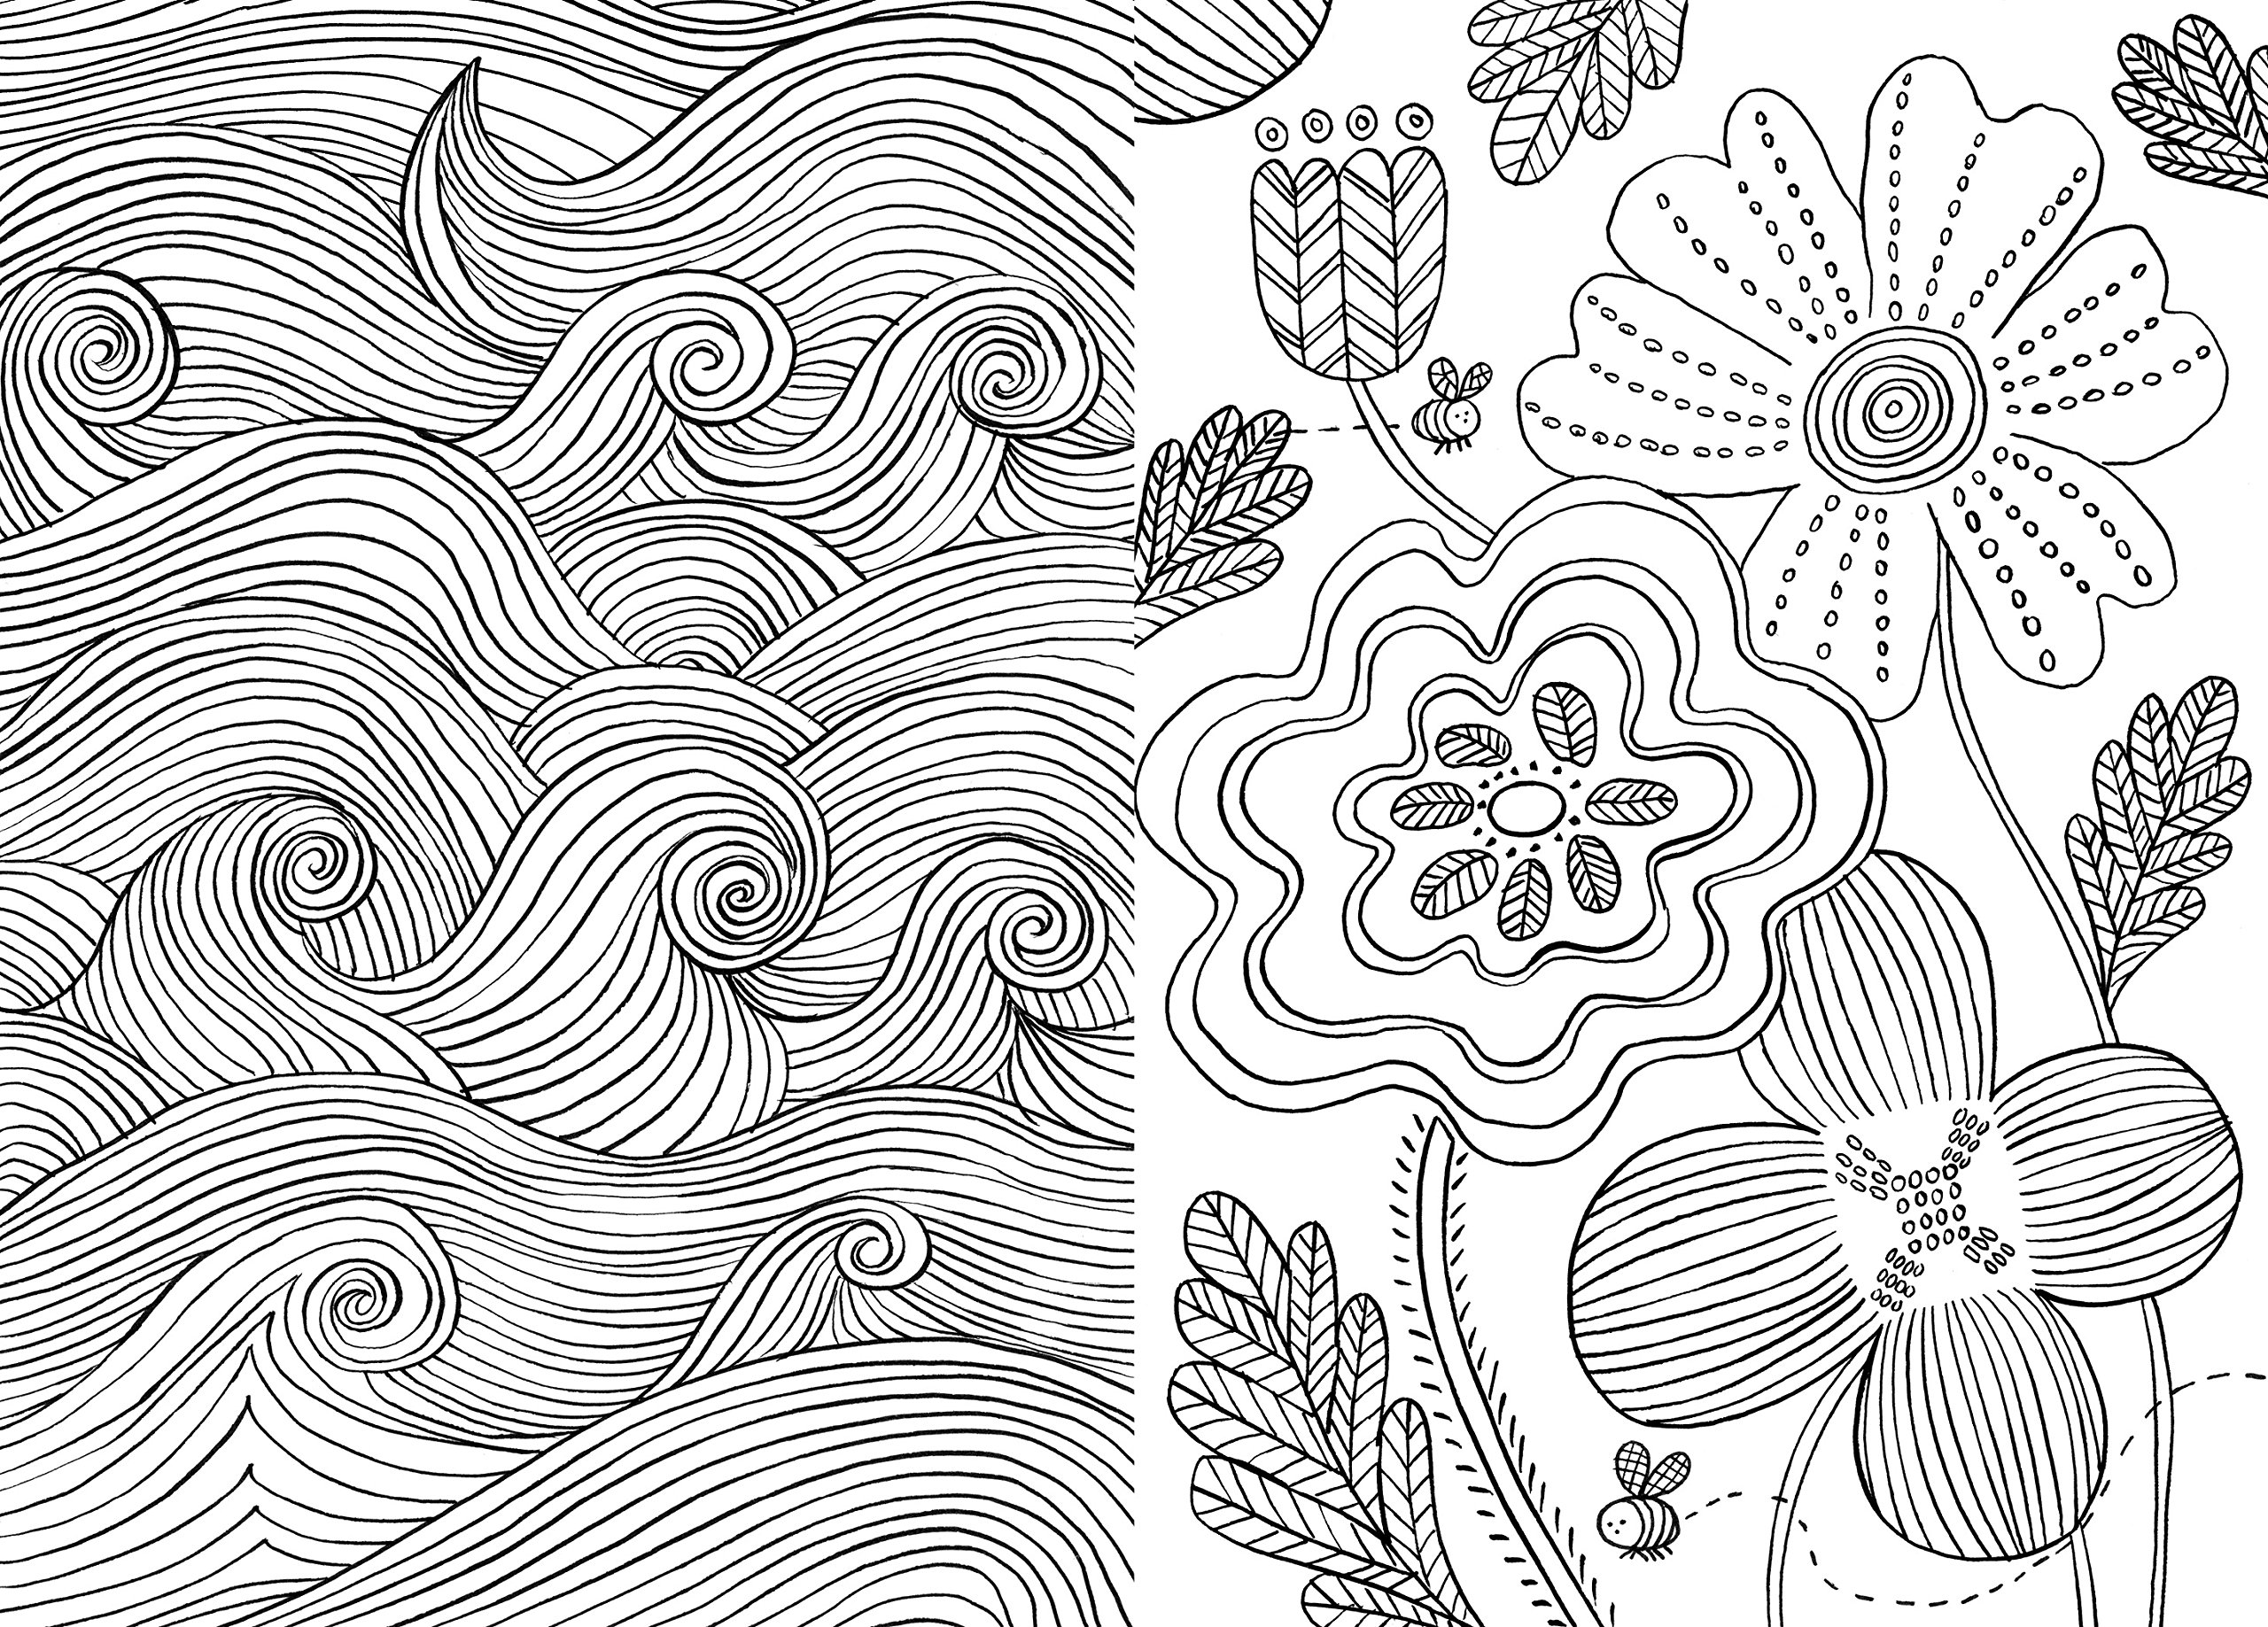 Colouring books for adults vancouver - The Mindfulness Colouring Book Anti Stress Art Therapy For Busy People Emma Farrarons 9780752265629 Books Amazon Ca